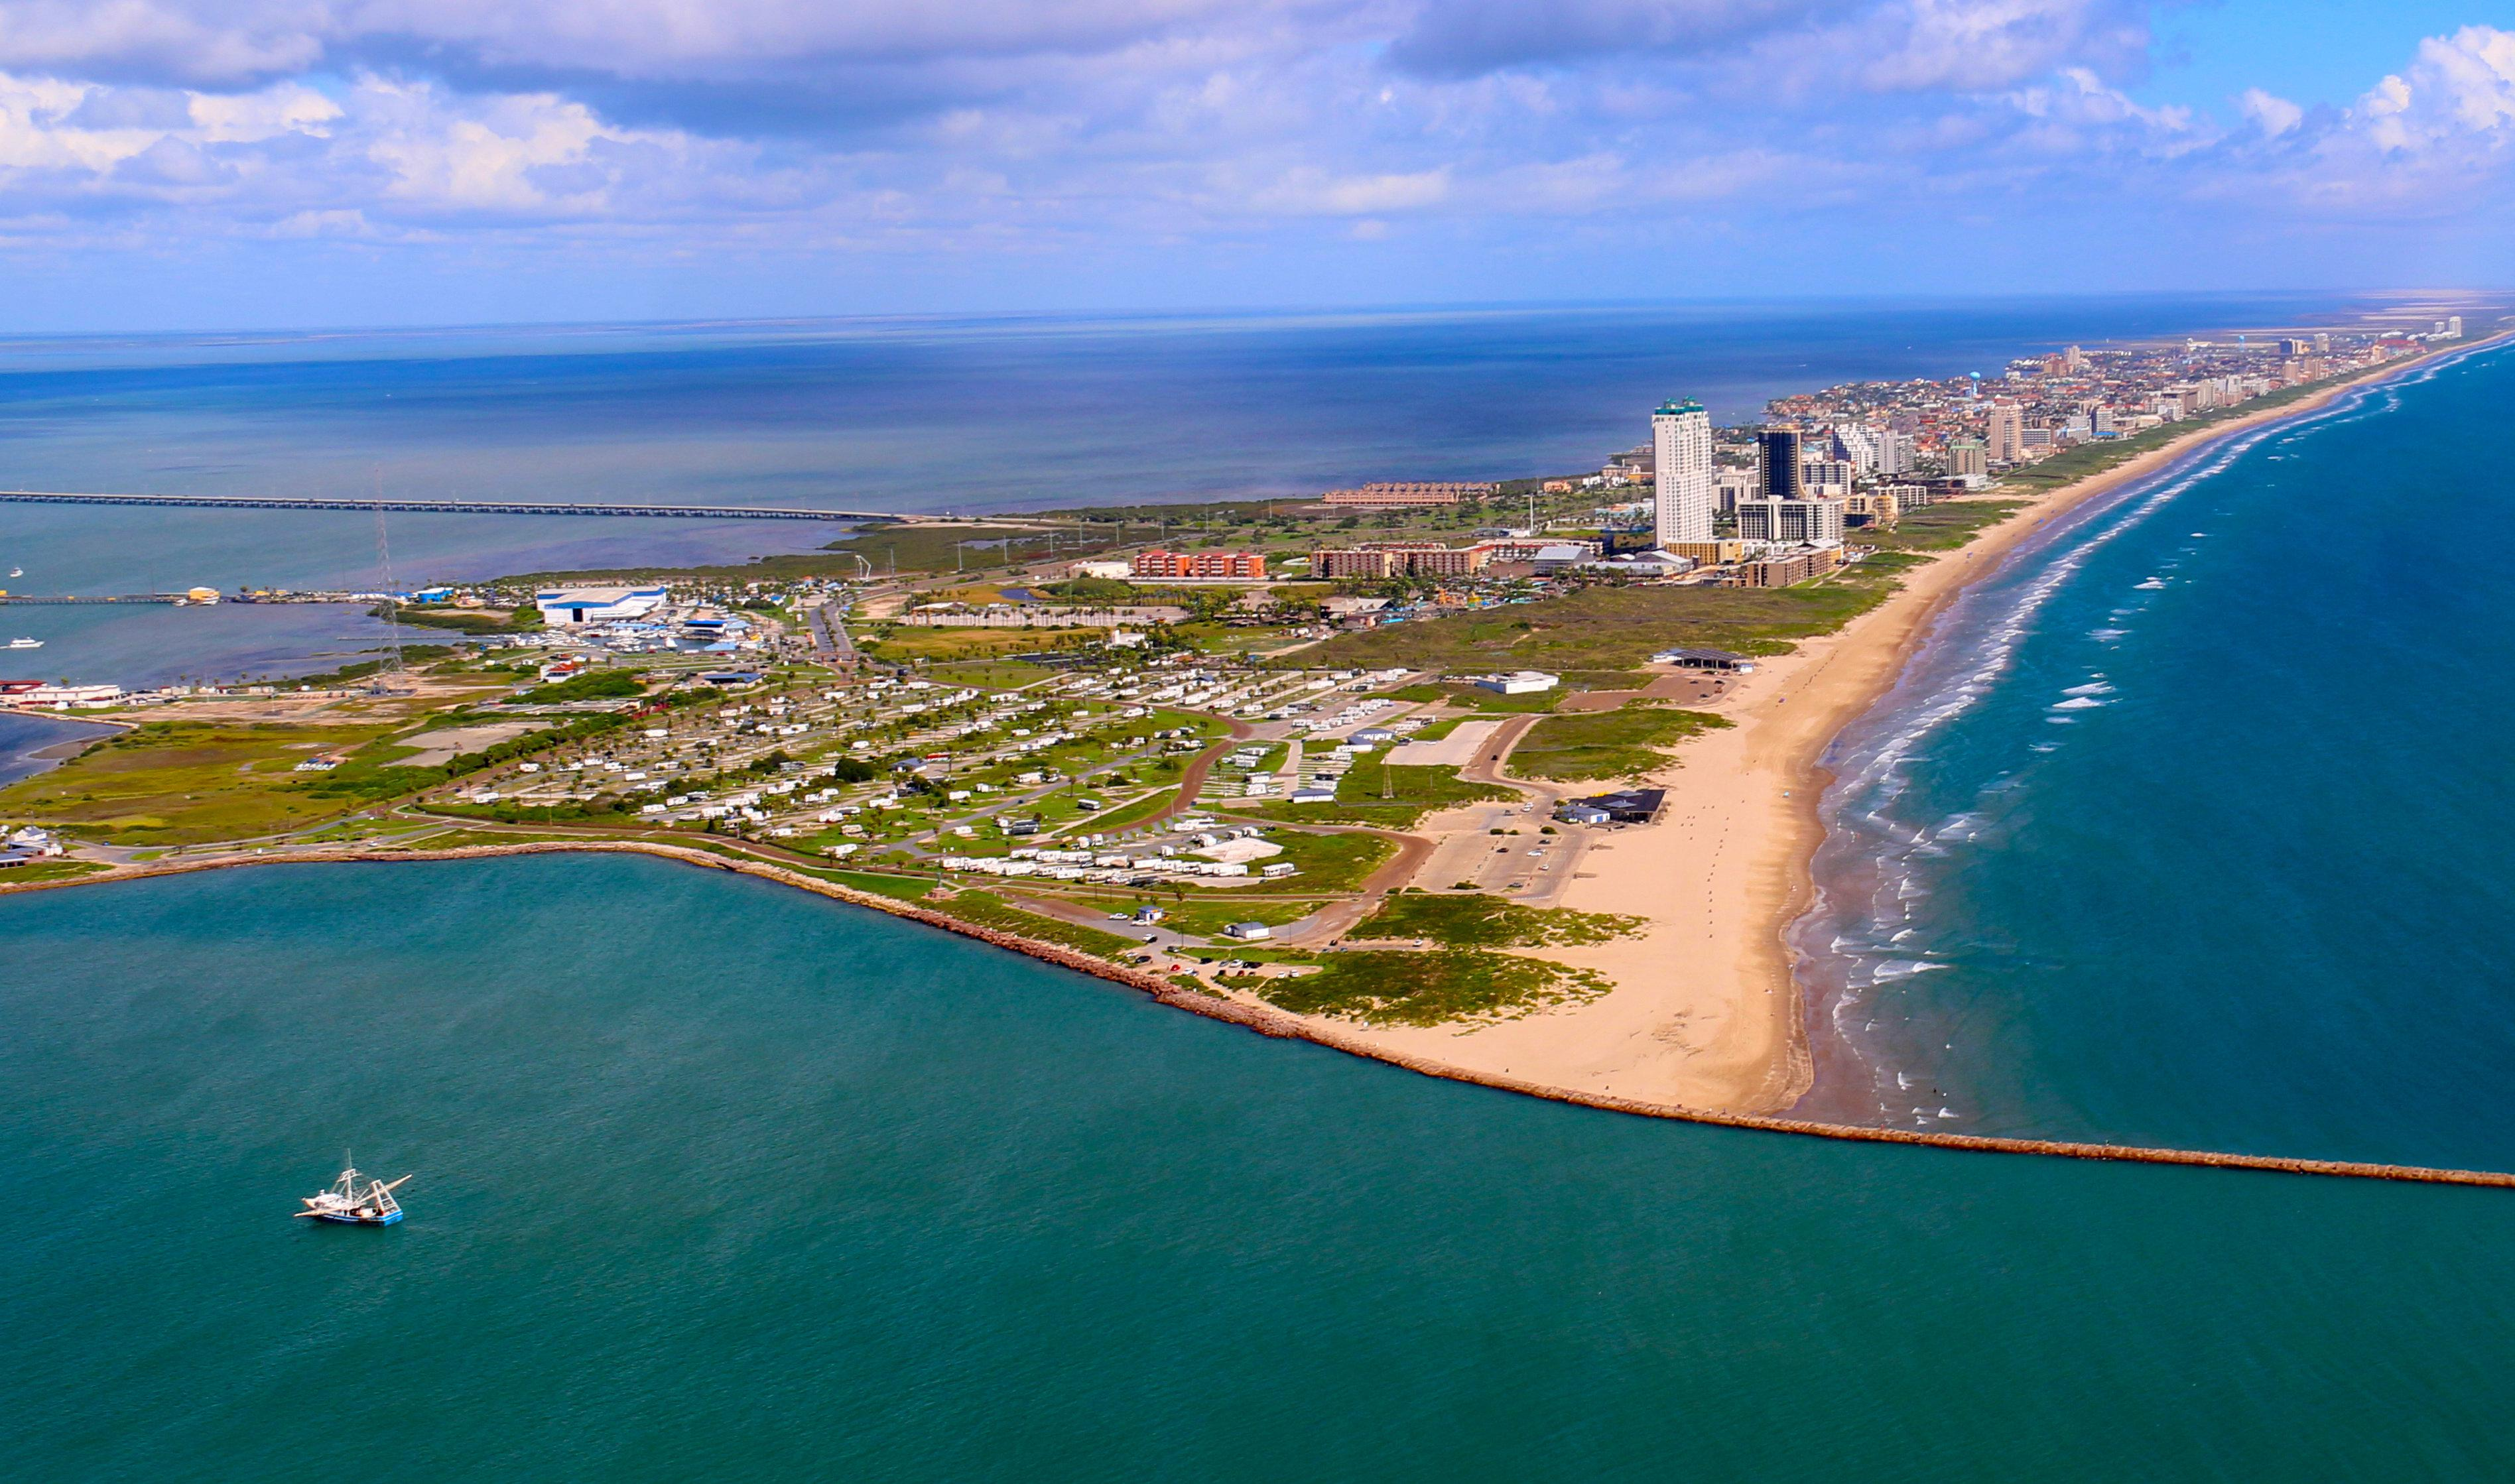 South Padre Island's restaurants and nightlife scene are at your doorstep